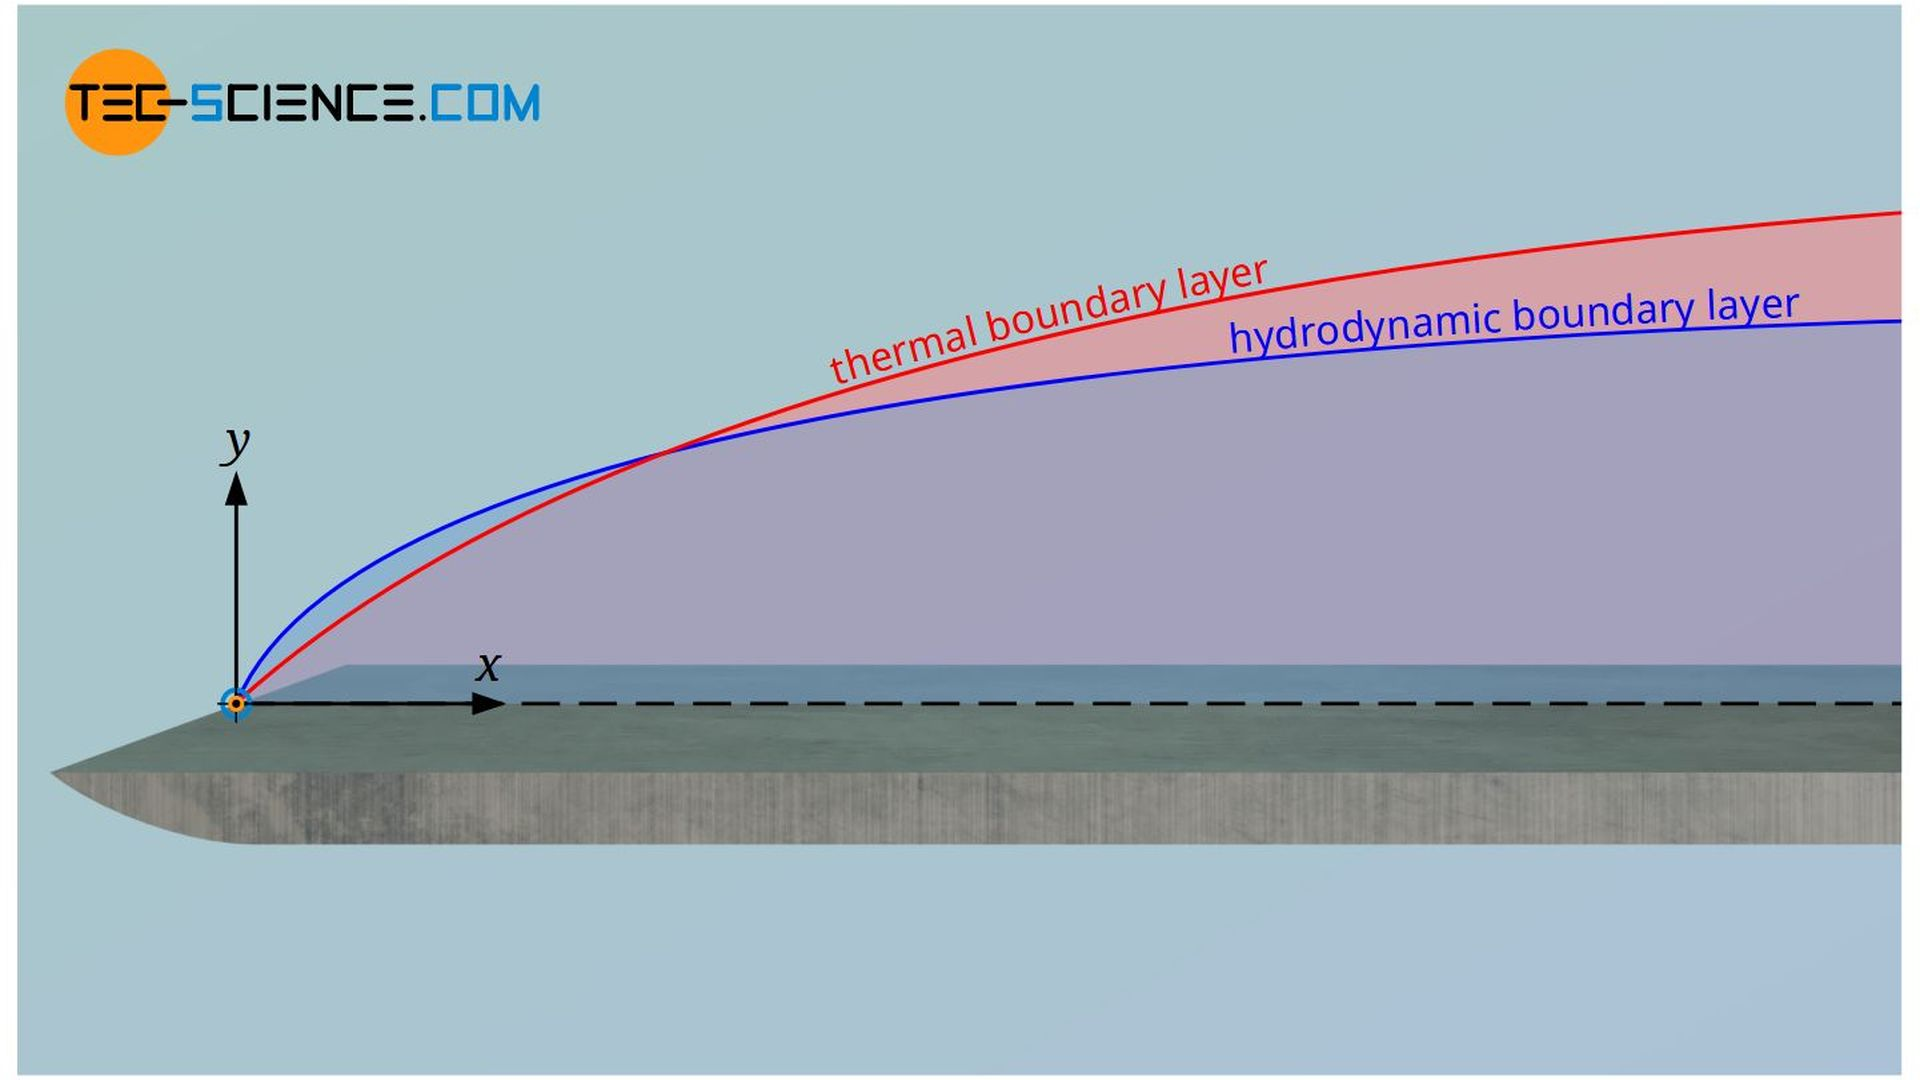 Hydrodynamic and thermal boundary layer of the flow over a flat plate